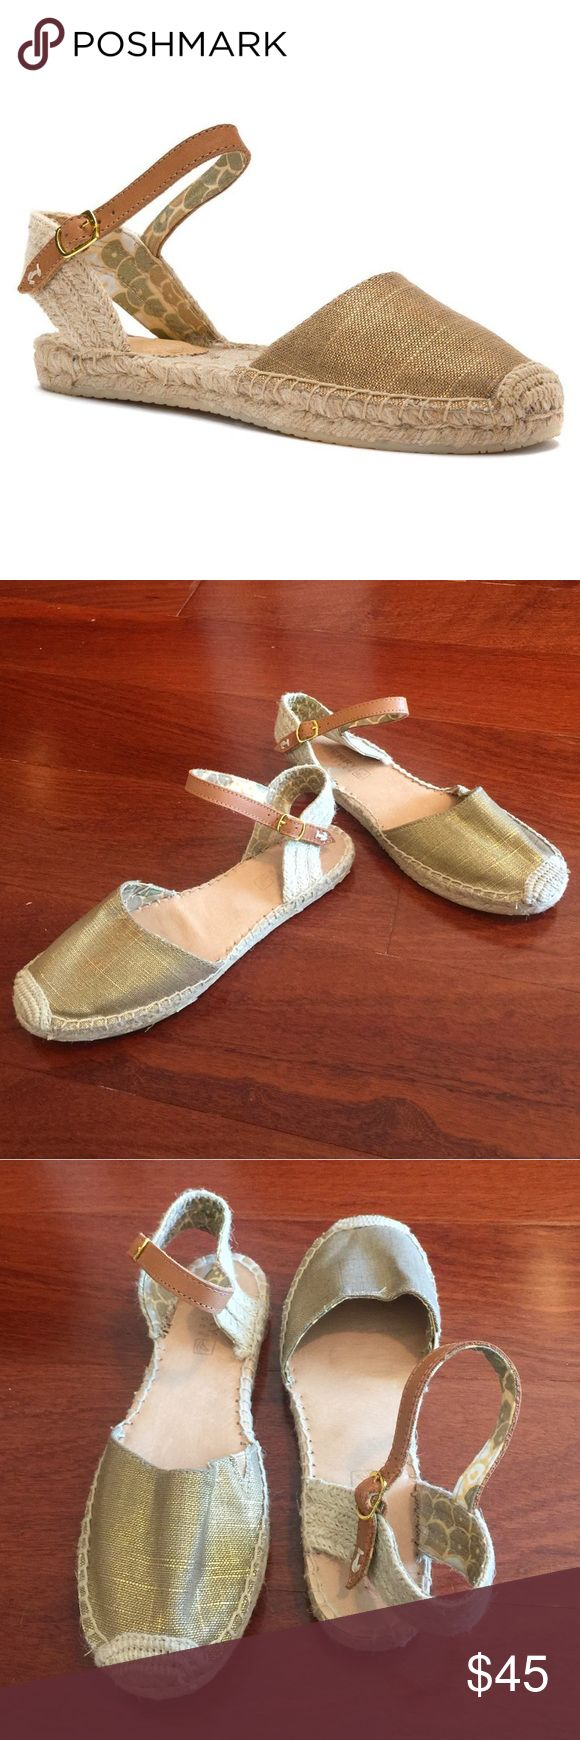 """Sperry Top-Sider Hope Espadrille Gold Flats Pre-Owned; some signs of wear but in good wearing condition. Beautiful gold espadrille """"Hope"""" flats by Sperry Top-Sider. Size 7. Sperry Top-Sider Shoes Espadrilles"""